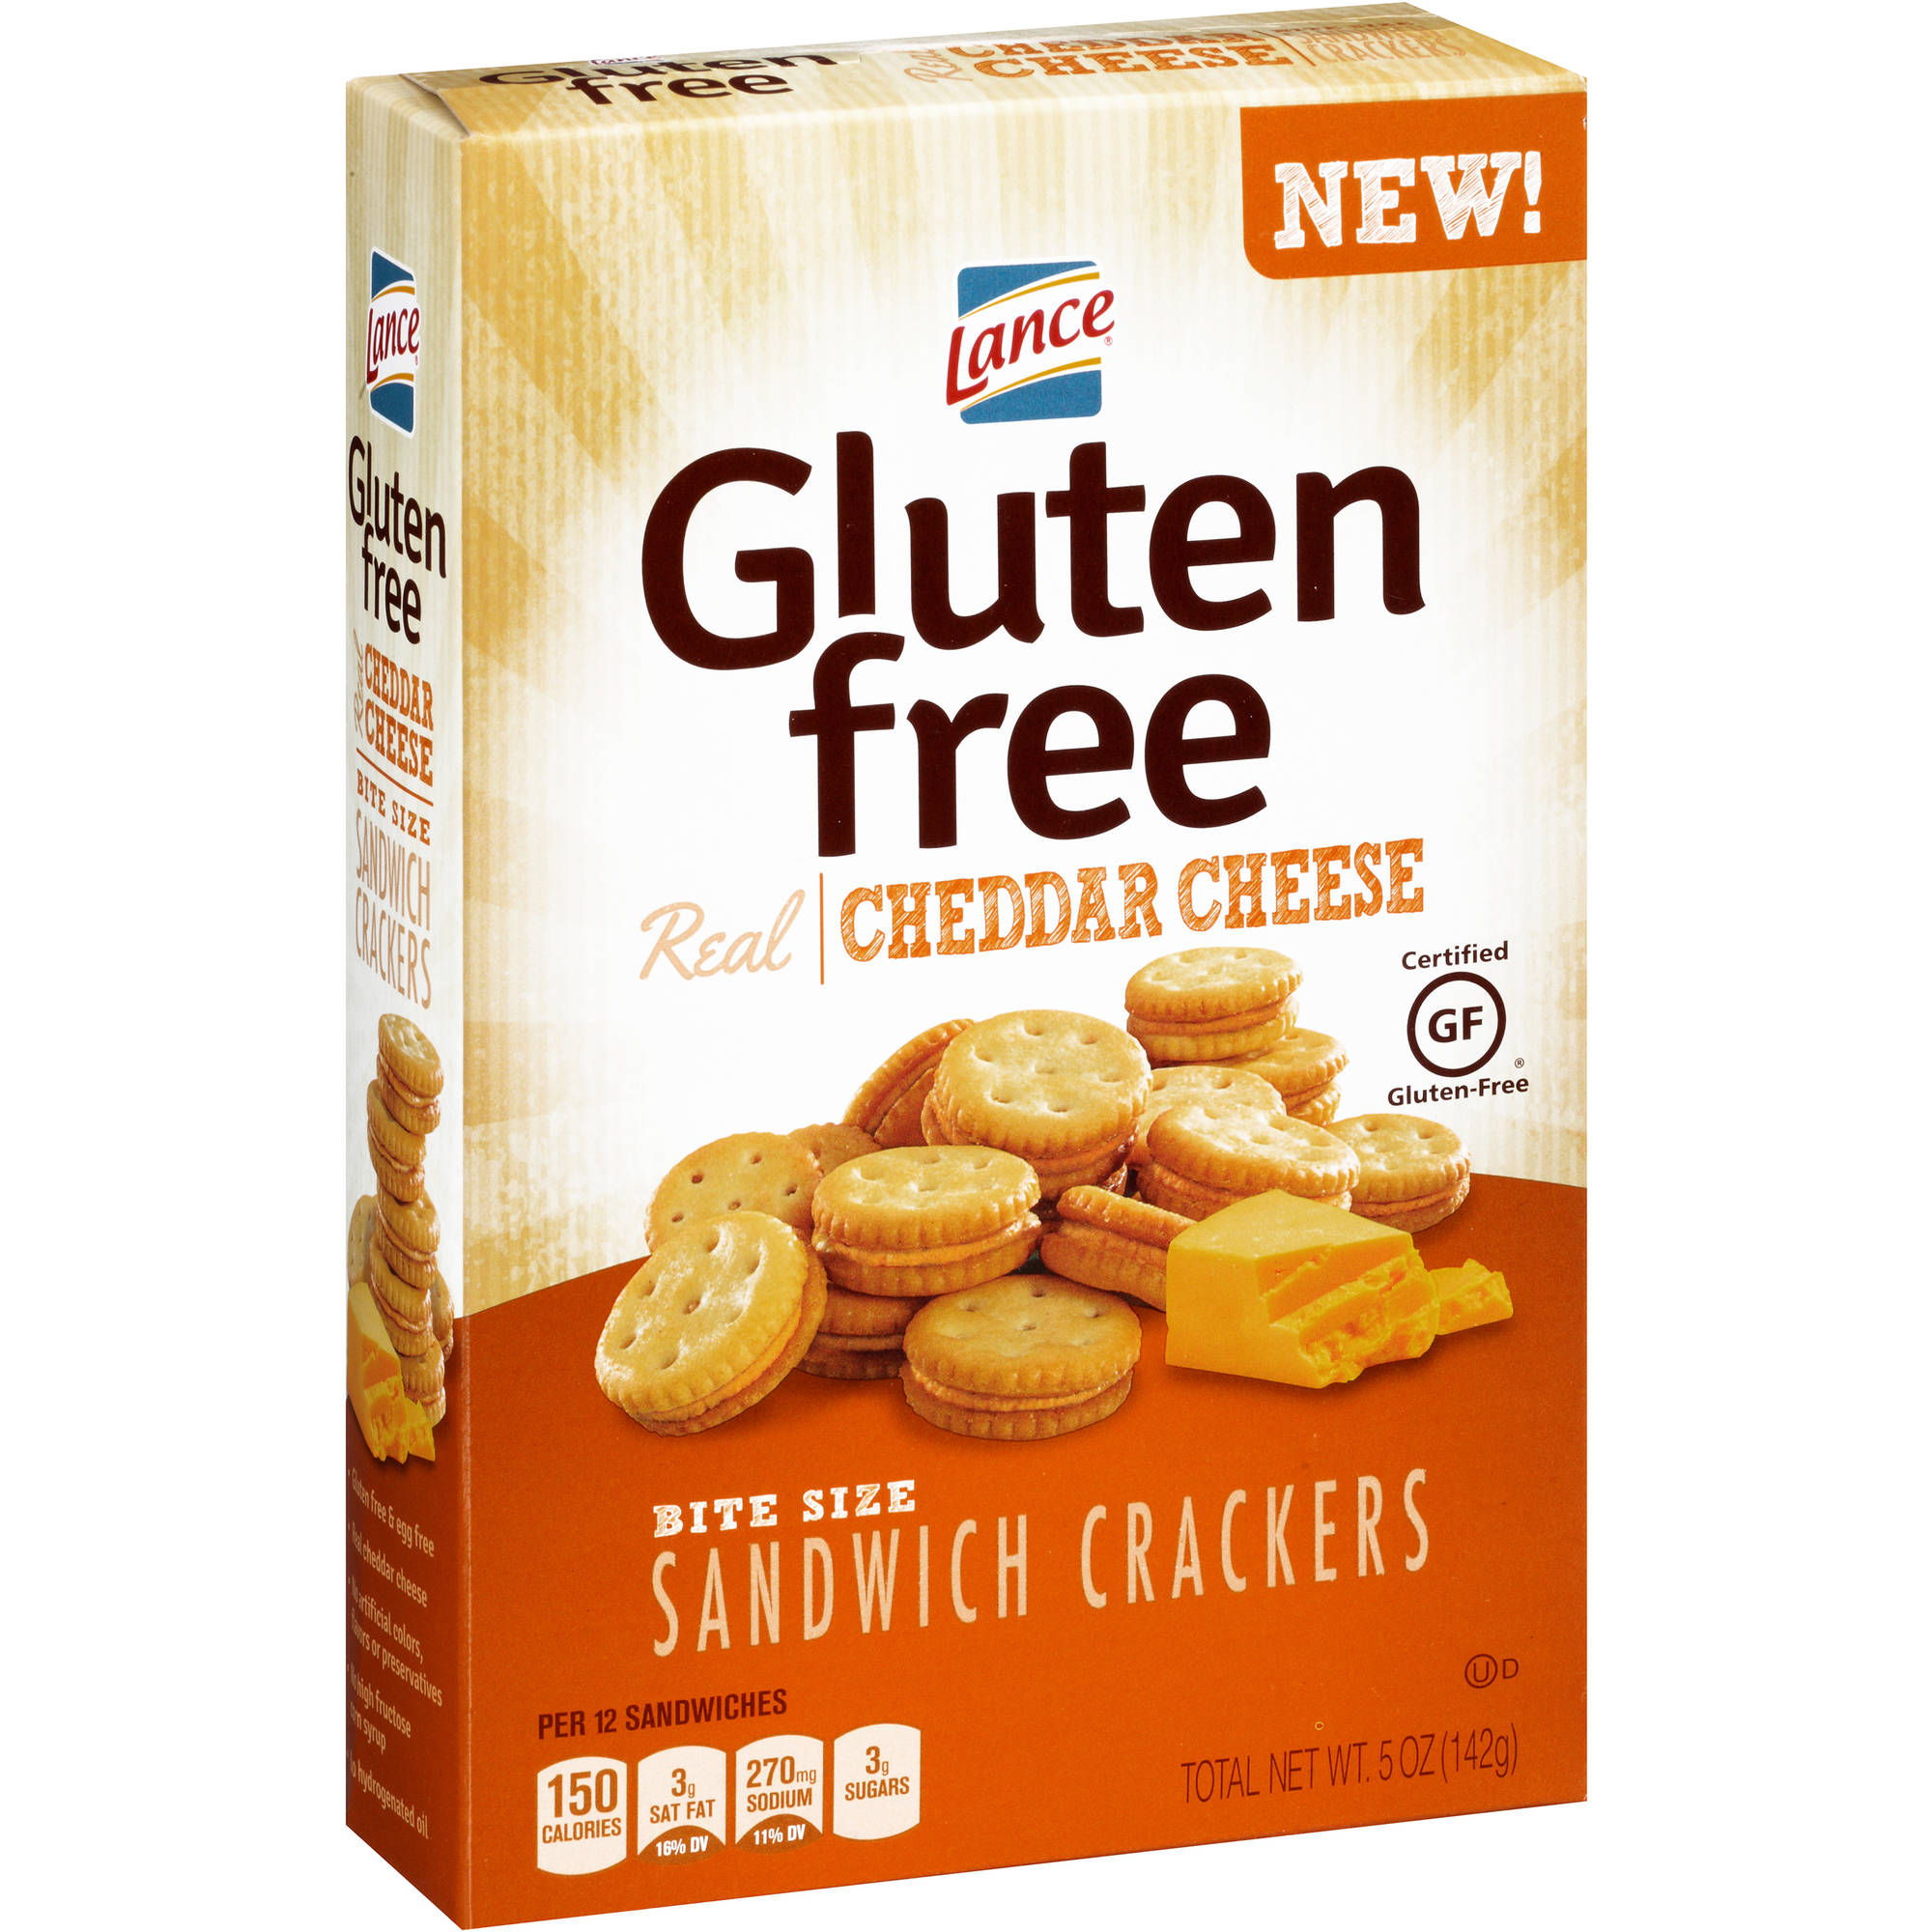 Lance Gluten Free Cheddar Cheese Bite Size Sandwich Crackers, 5 oz